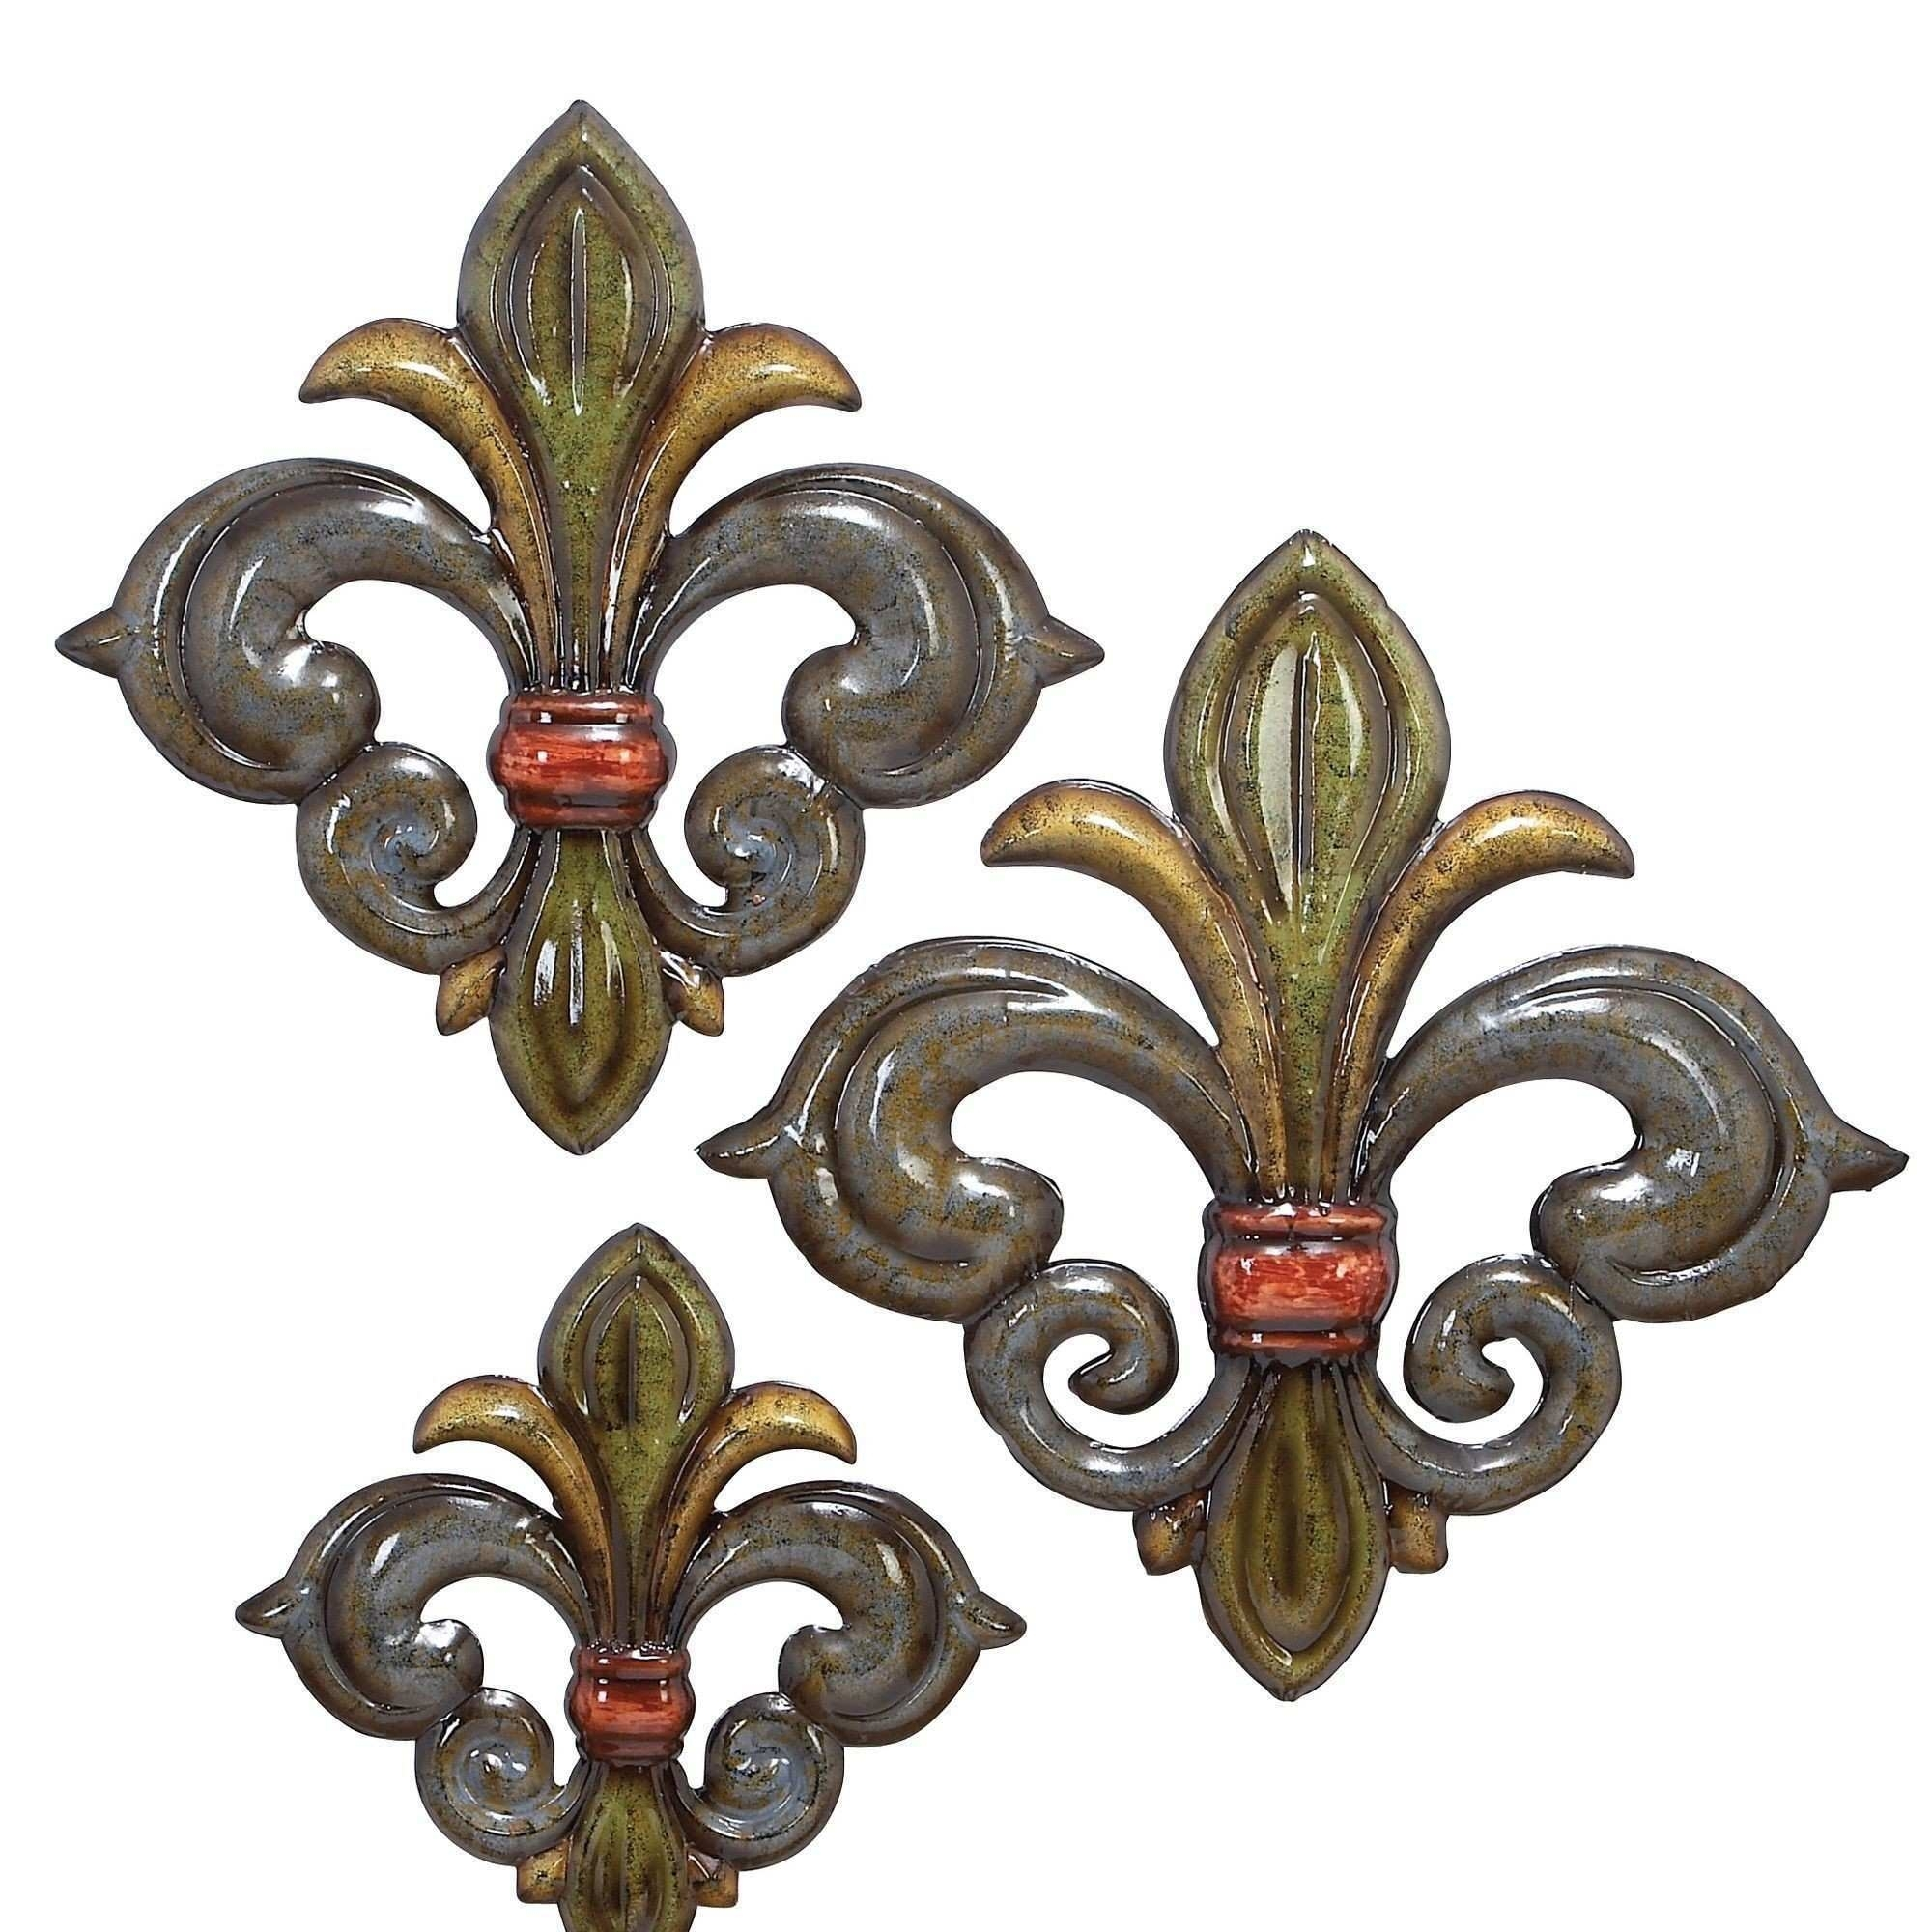 Awesome Large Fleur De Lis Wall Decor | Wall Art Ideas for Fleur De Lis Wall Art (Image 3 of 20)